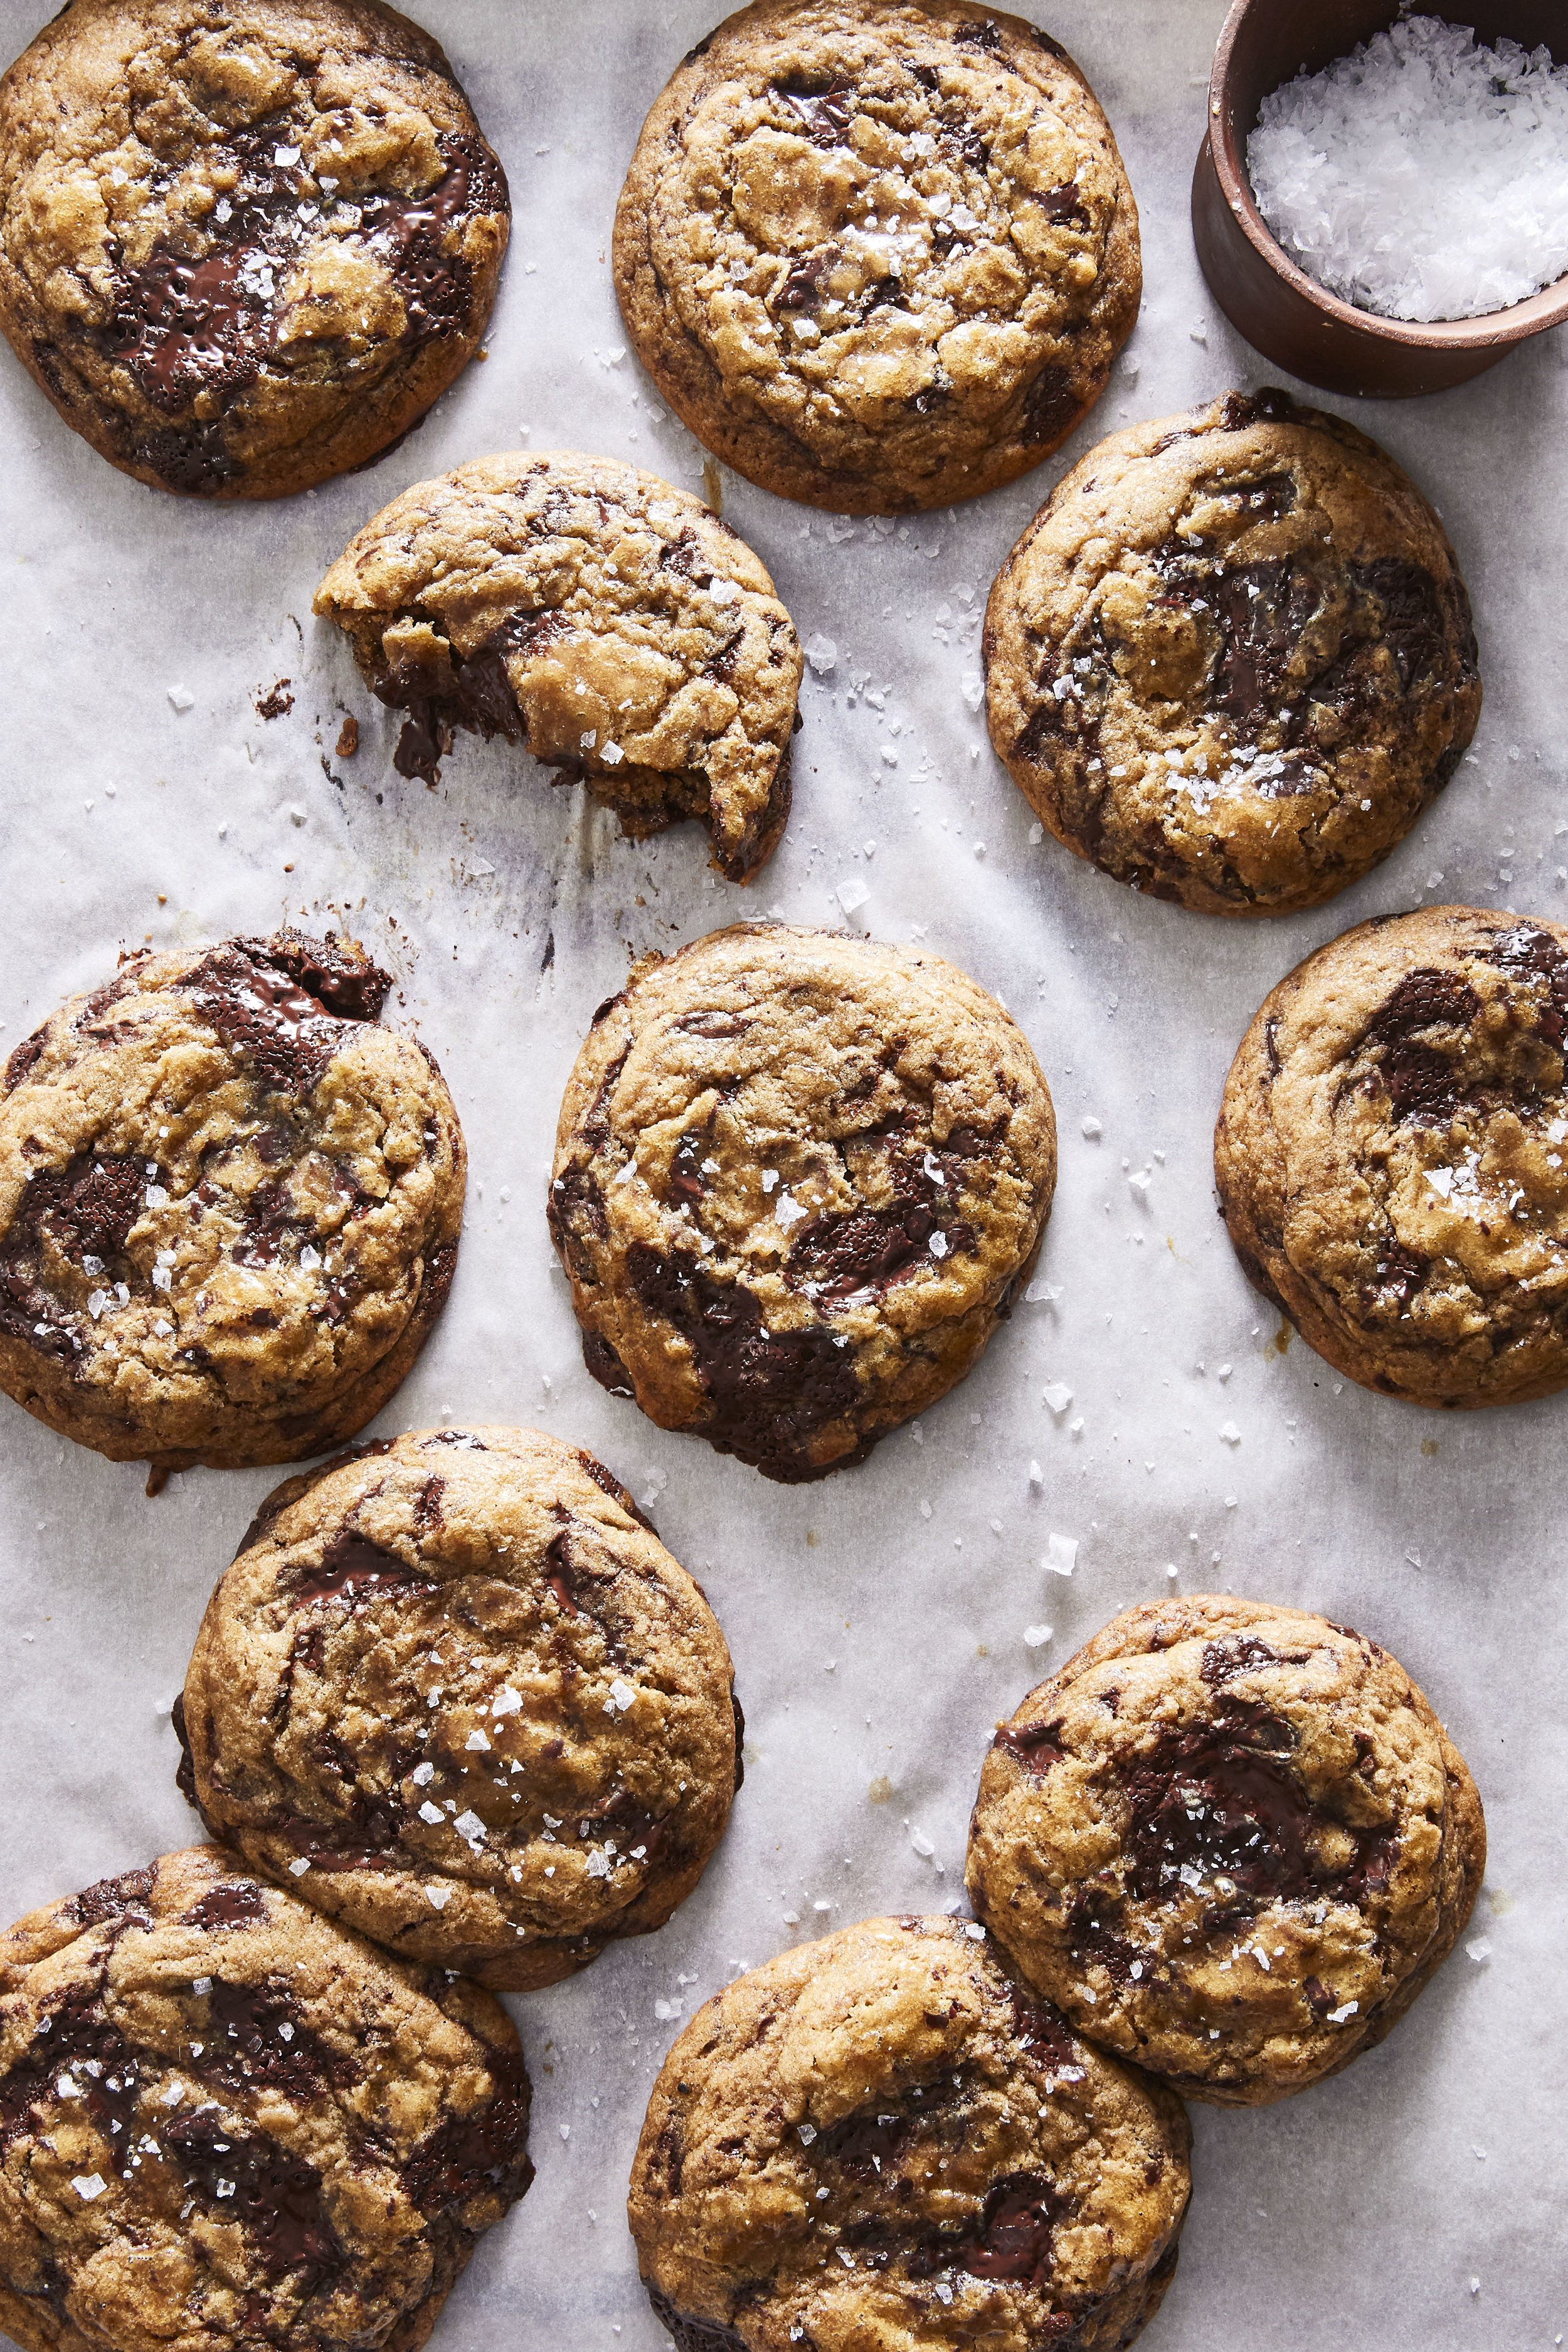 170729_COPELAND_WKND_CHOCOLATE_CHIP_COOKIES_026.jpg